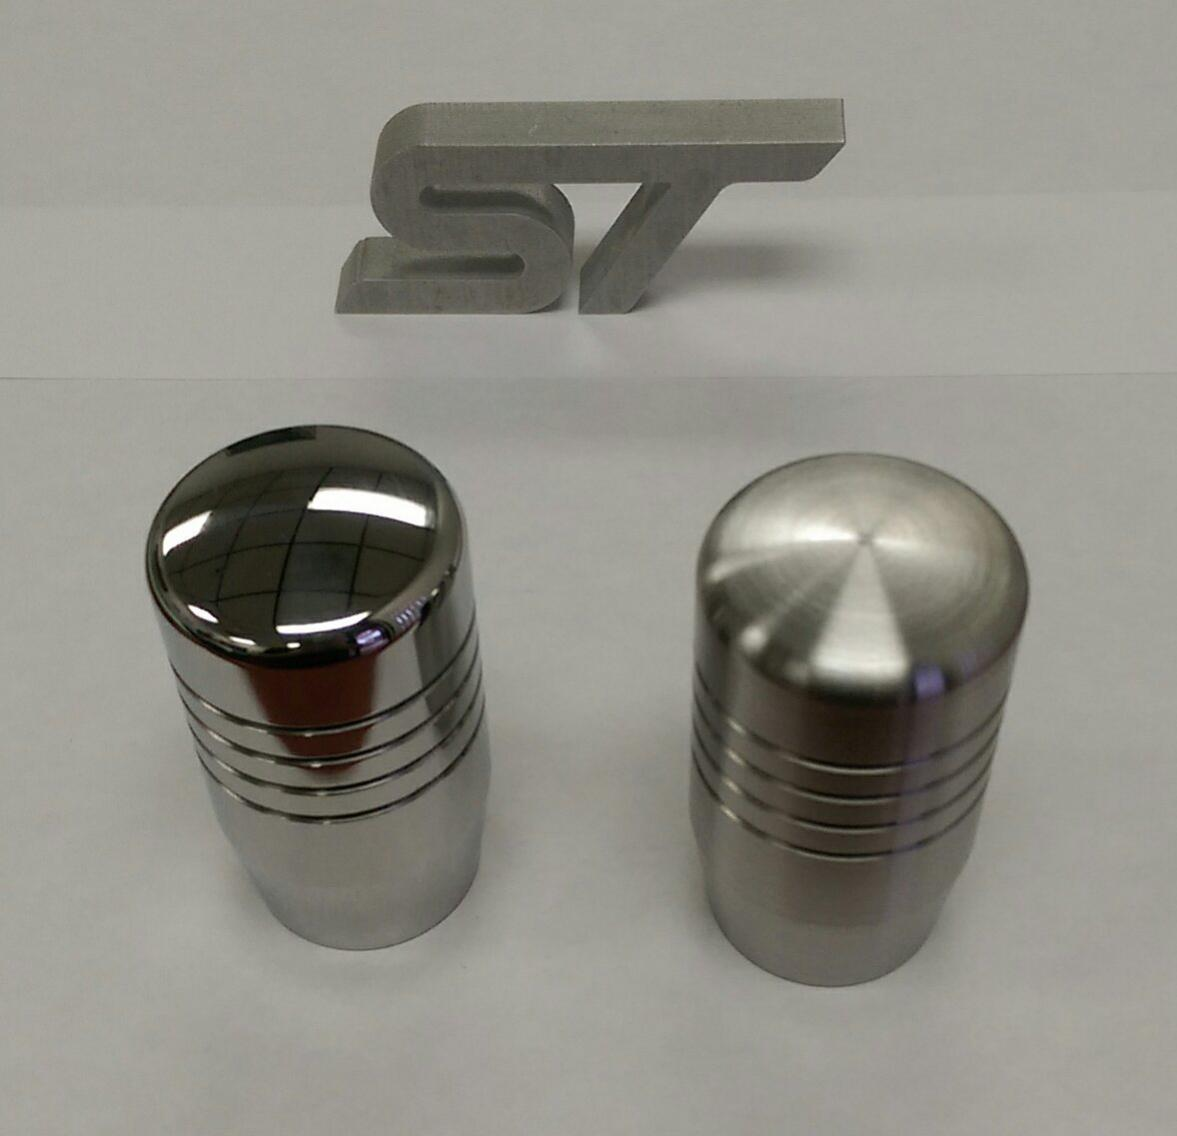 Piston Shift Knobs - Boosted Designs-imag1203_1.jpg